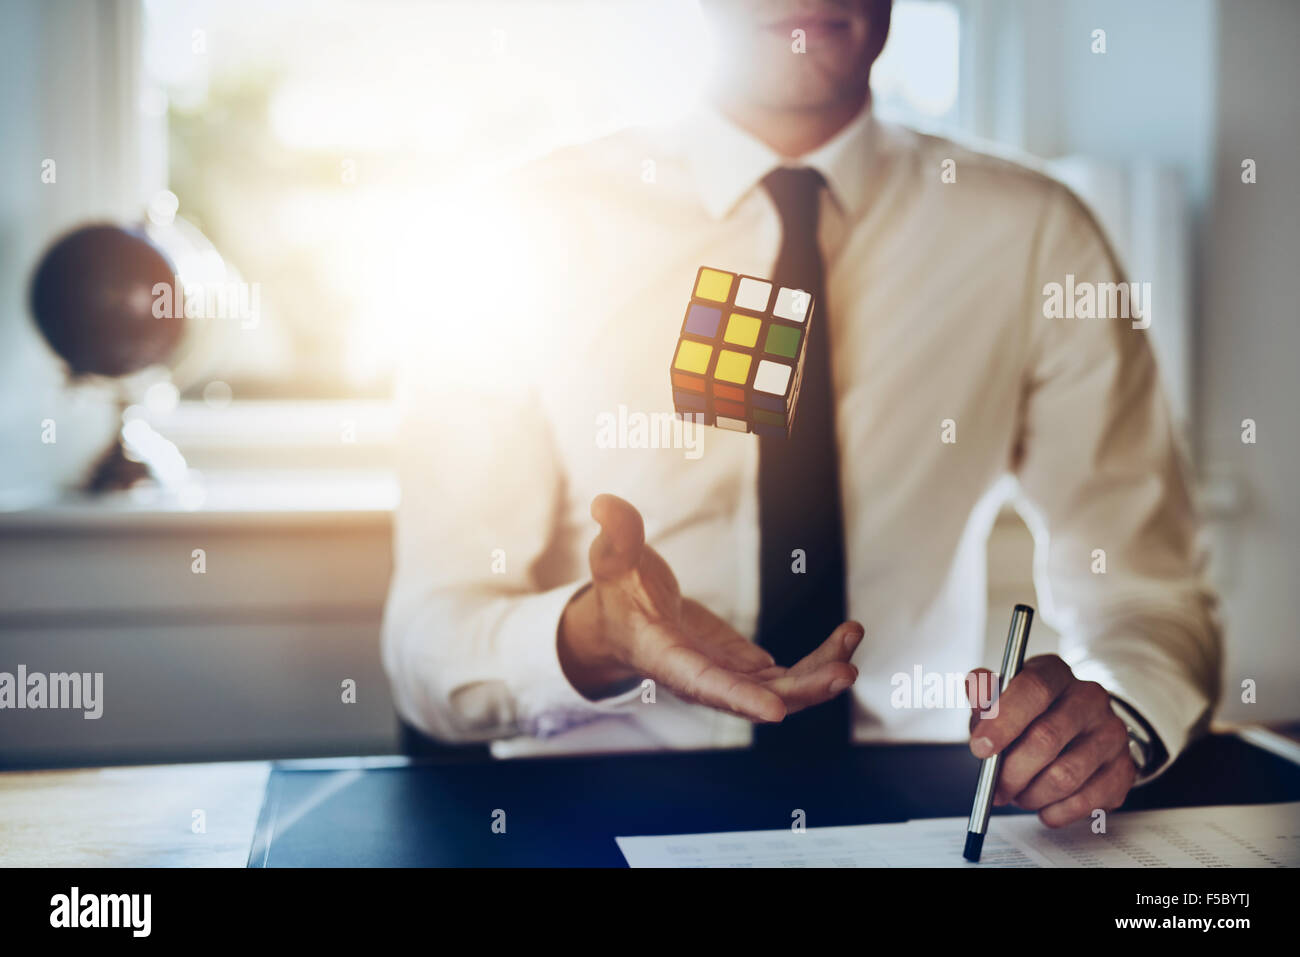 Confident successful business ma concept sitting at desk getting ideas, close up - Stock Image